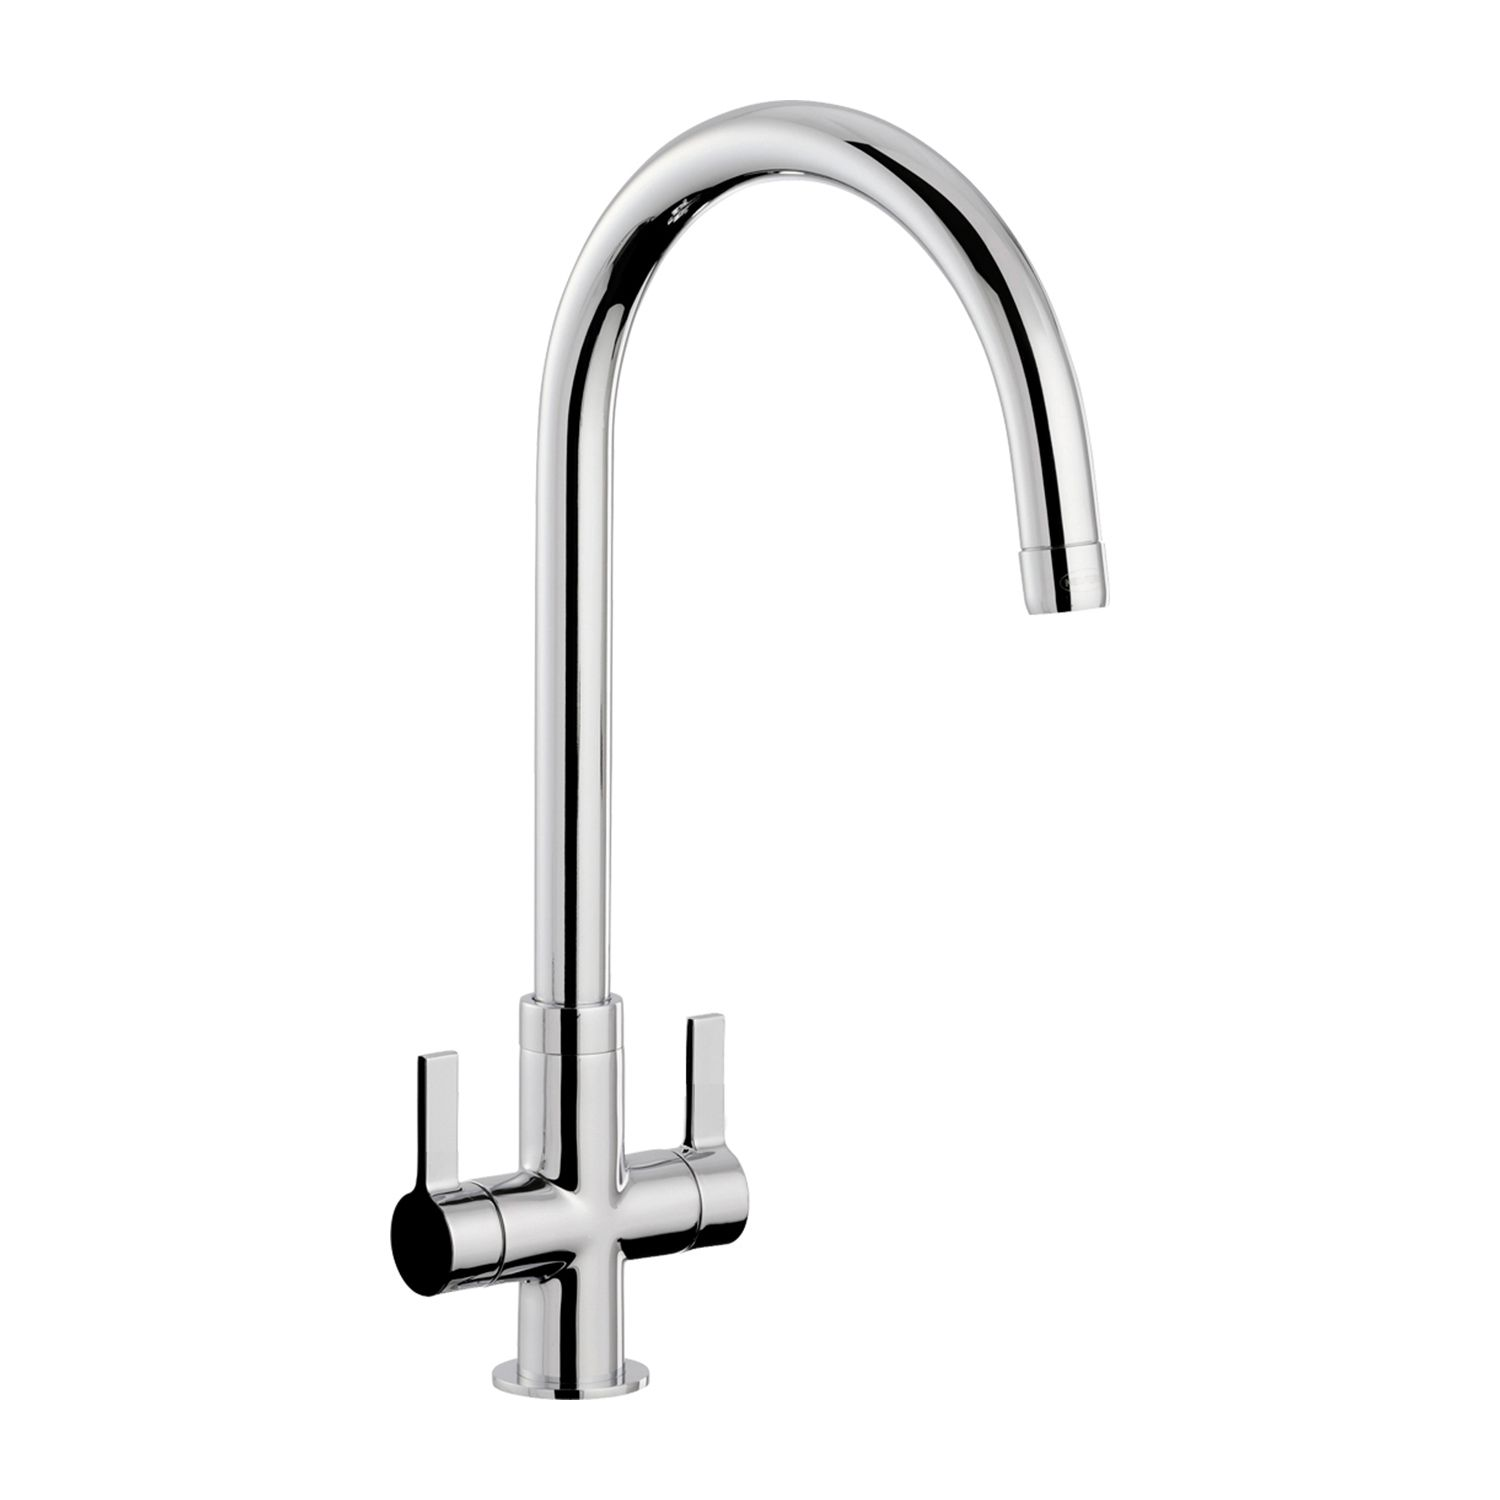 Bluci Cigno WRAS Approved Twin Lever Tap - Sinks-Taps.com